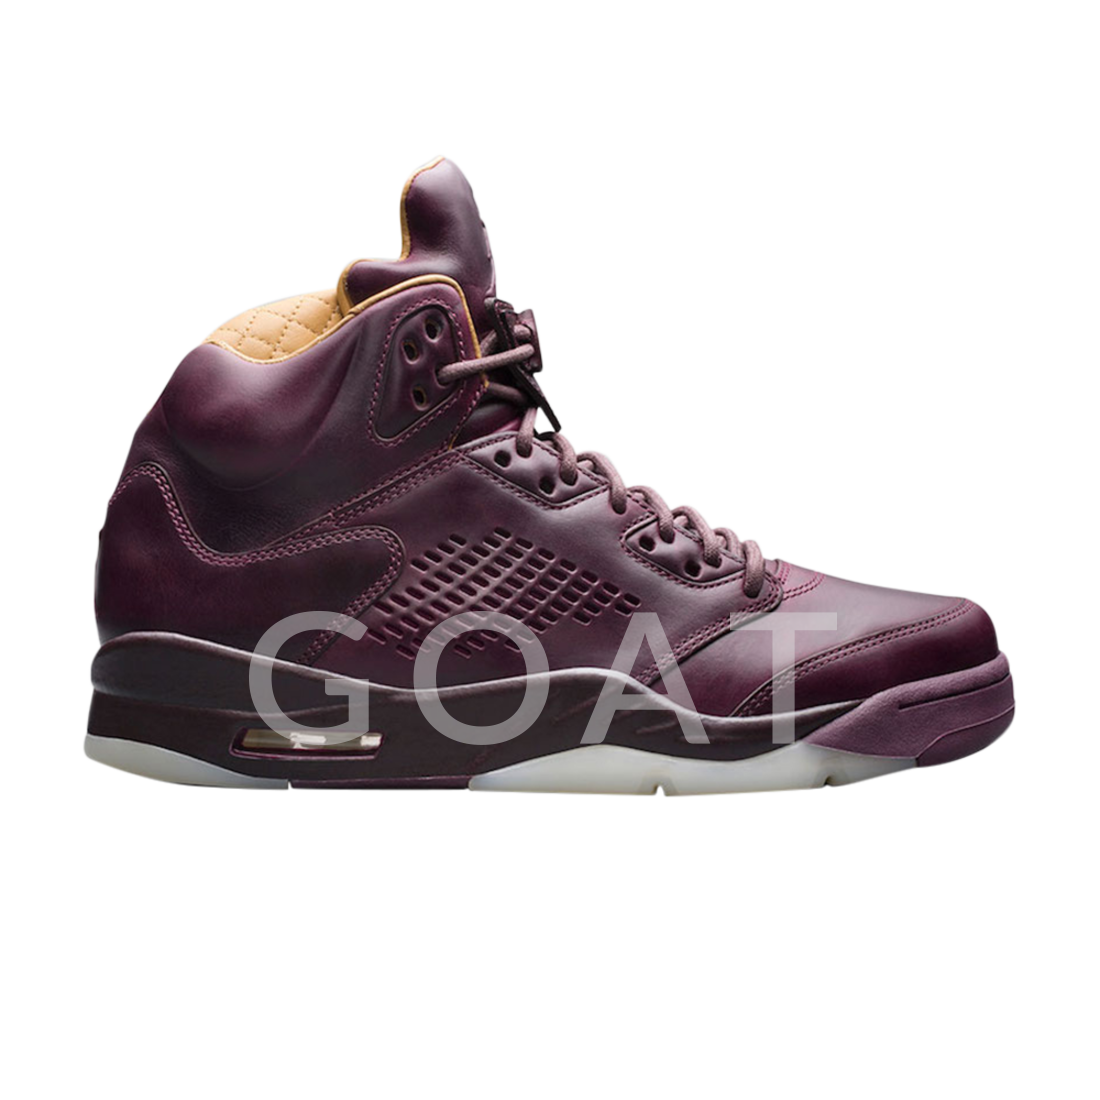 goat the safest way to buy and sell sneakers. choos sneakers